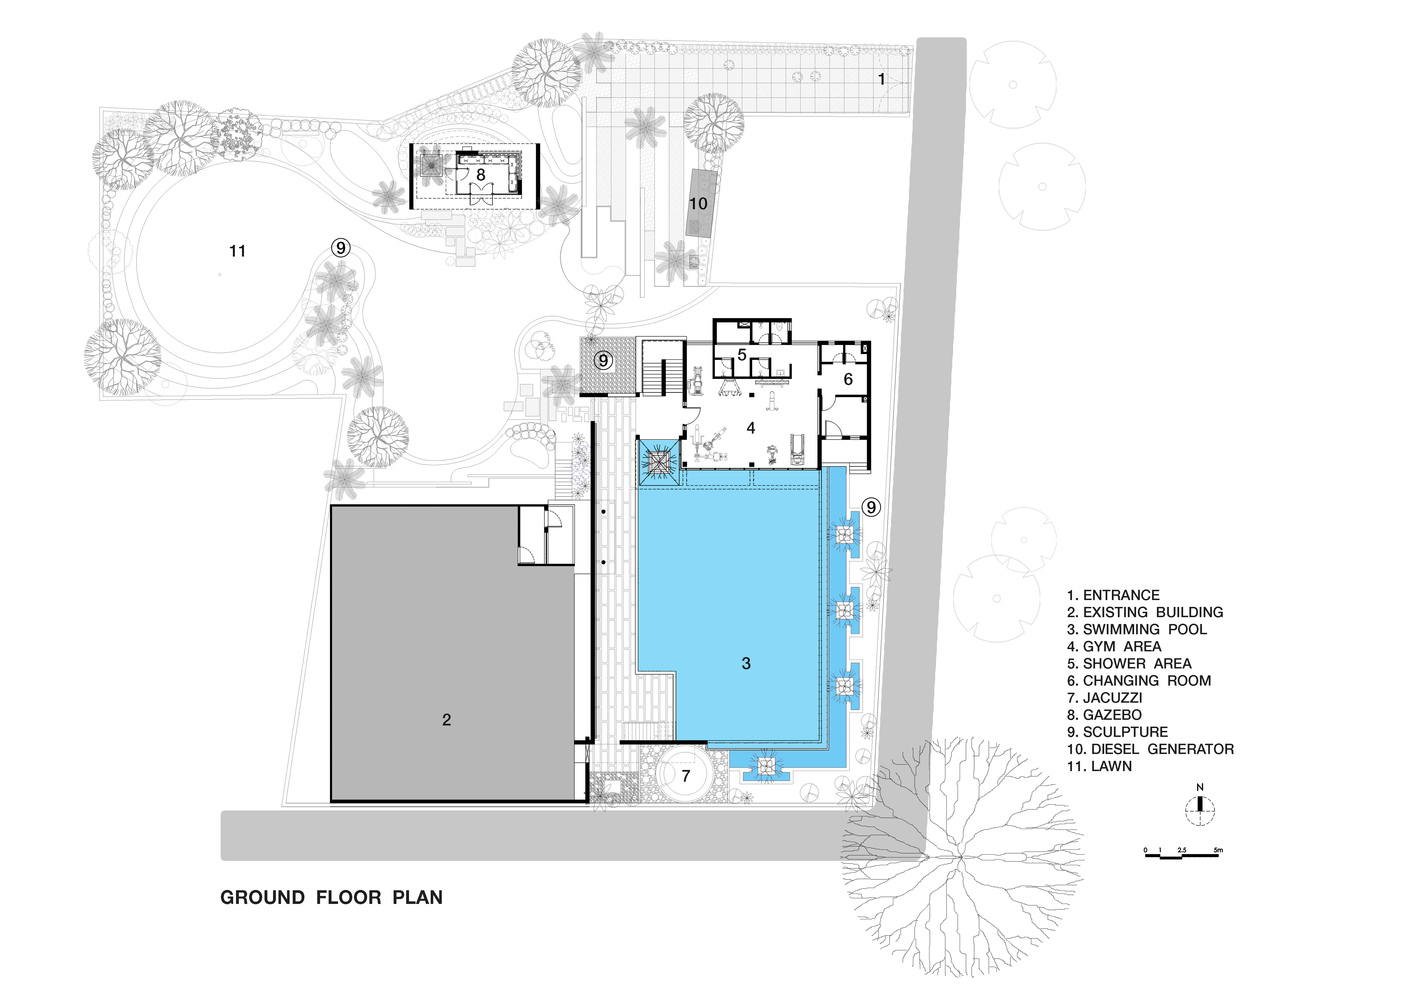 Pool House Ground Floor Plan